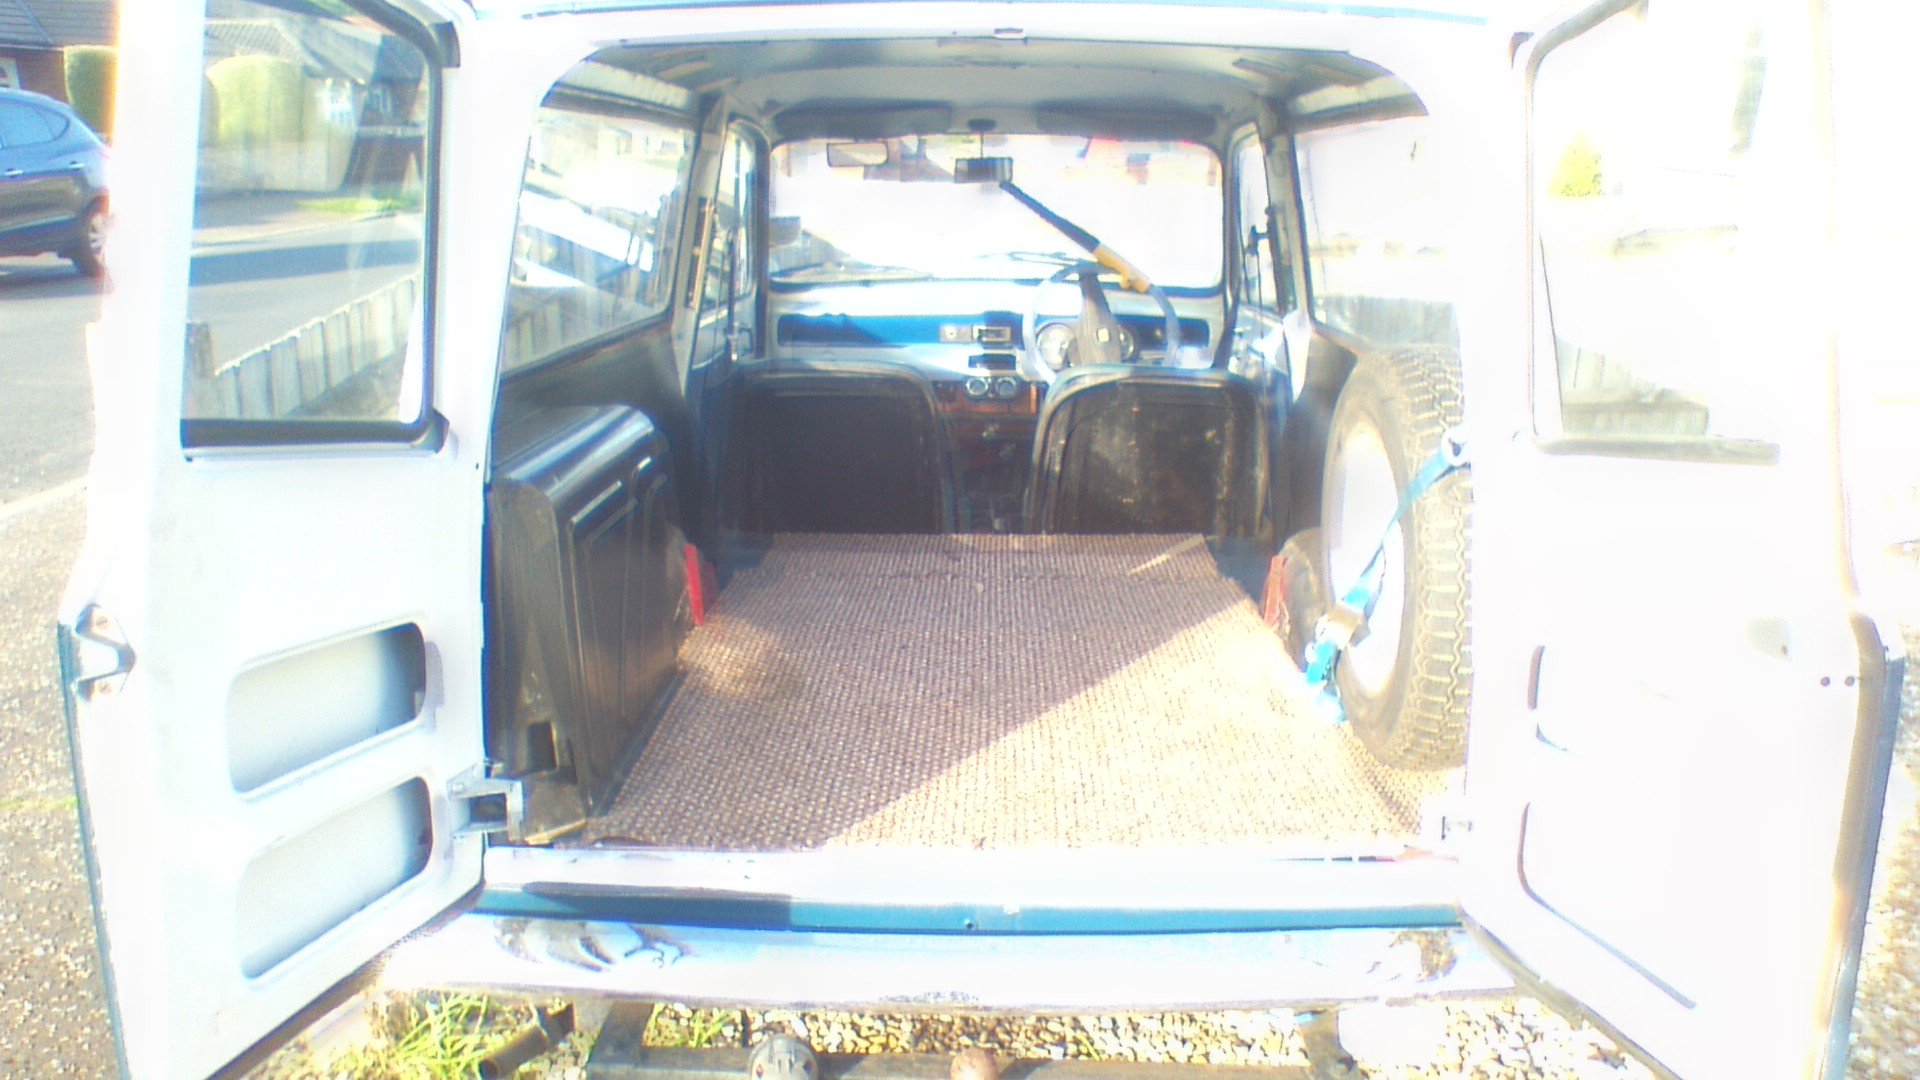 1964 bedford beagle vauxhall ha hb van For Sale (picture 5 of 6)